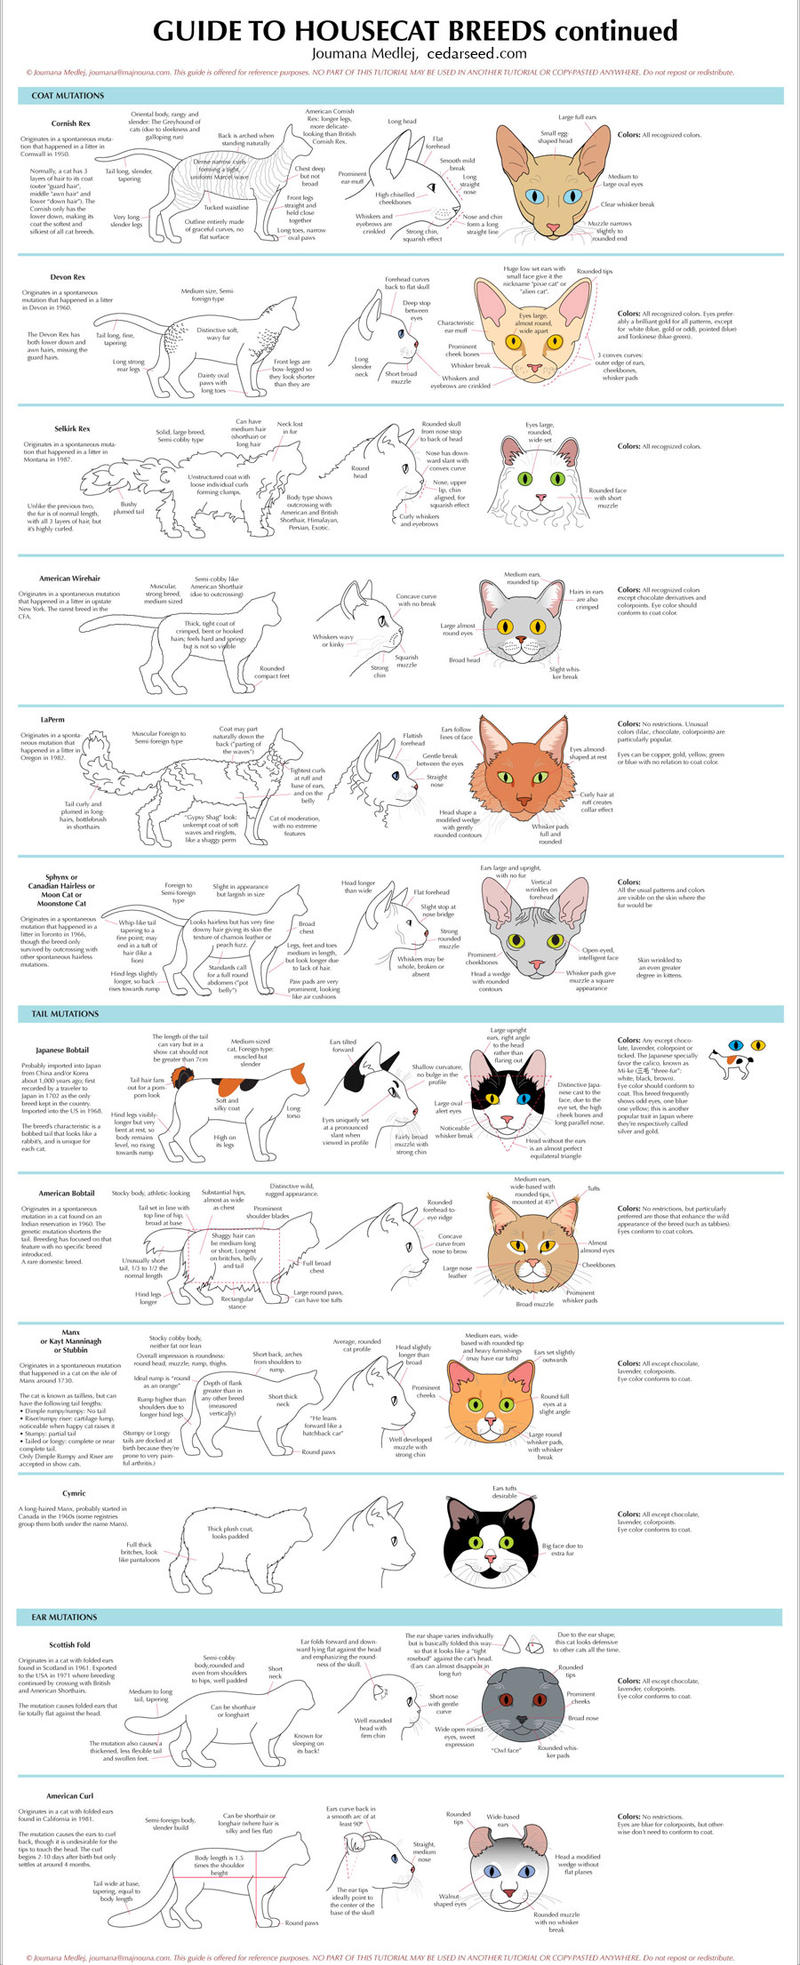 Guide to Housecat Breeds 2 by Majnouna on DeviantArt